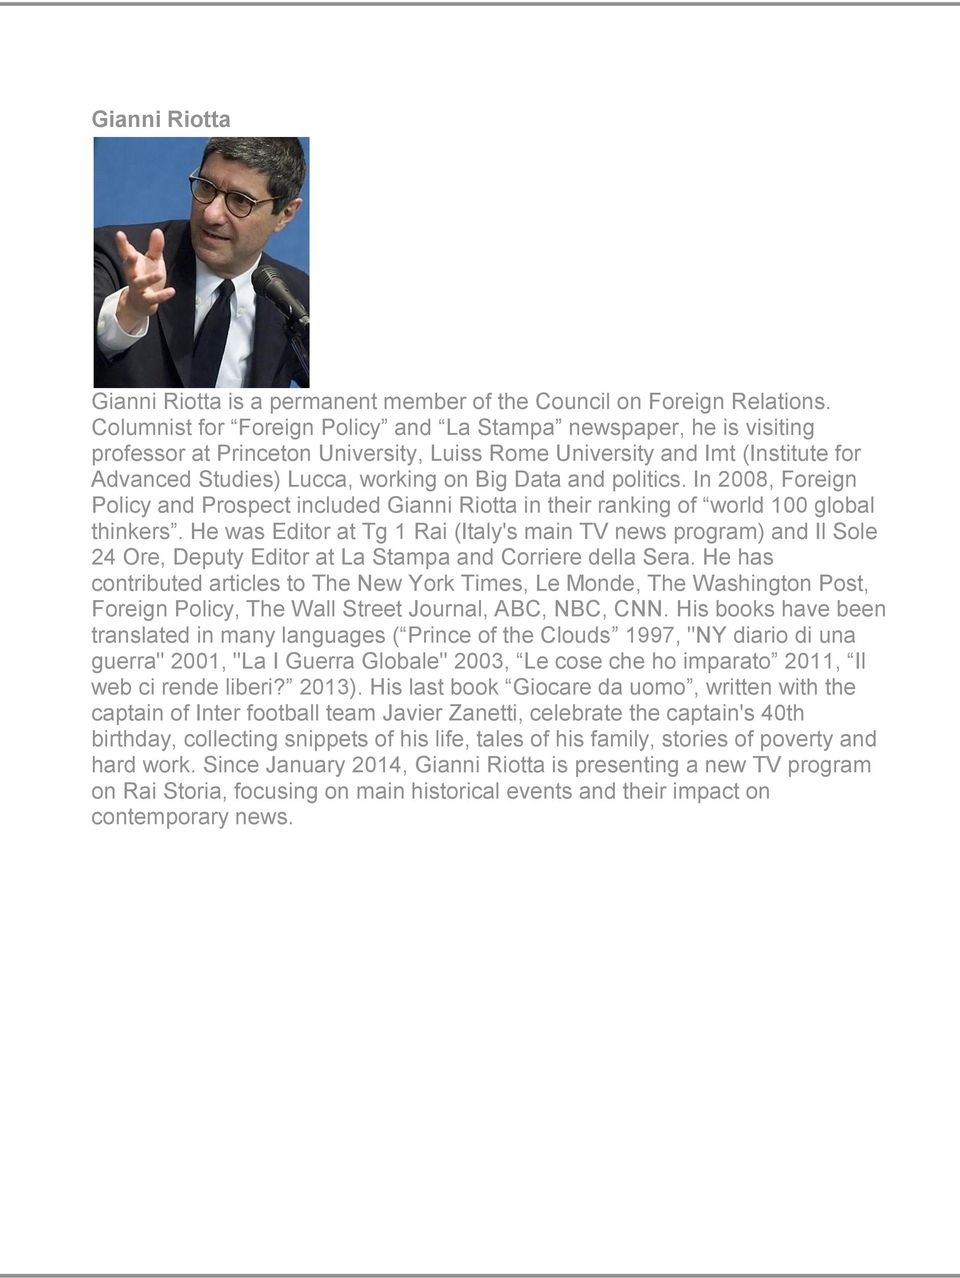 politics. In 2008, Foreign Policy and Prospect included Gianni Riotta in their ranking of world 100 global thinkers.